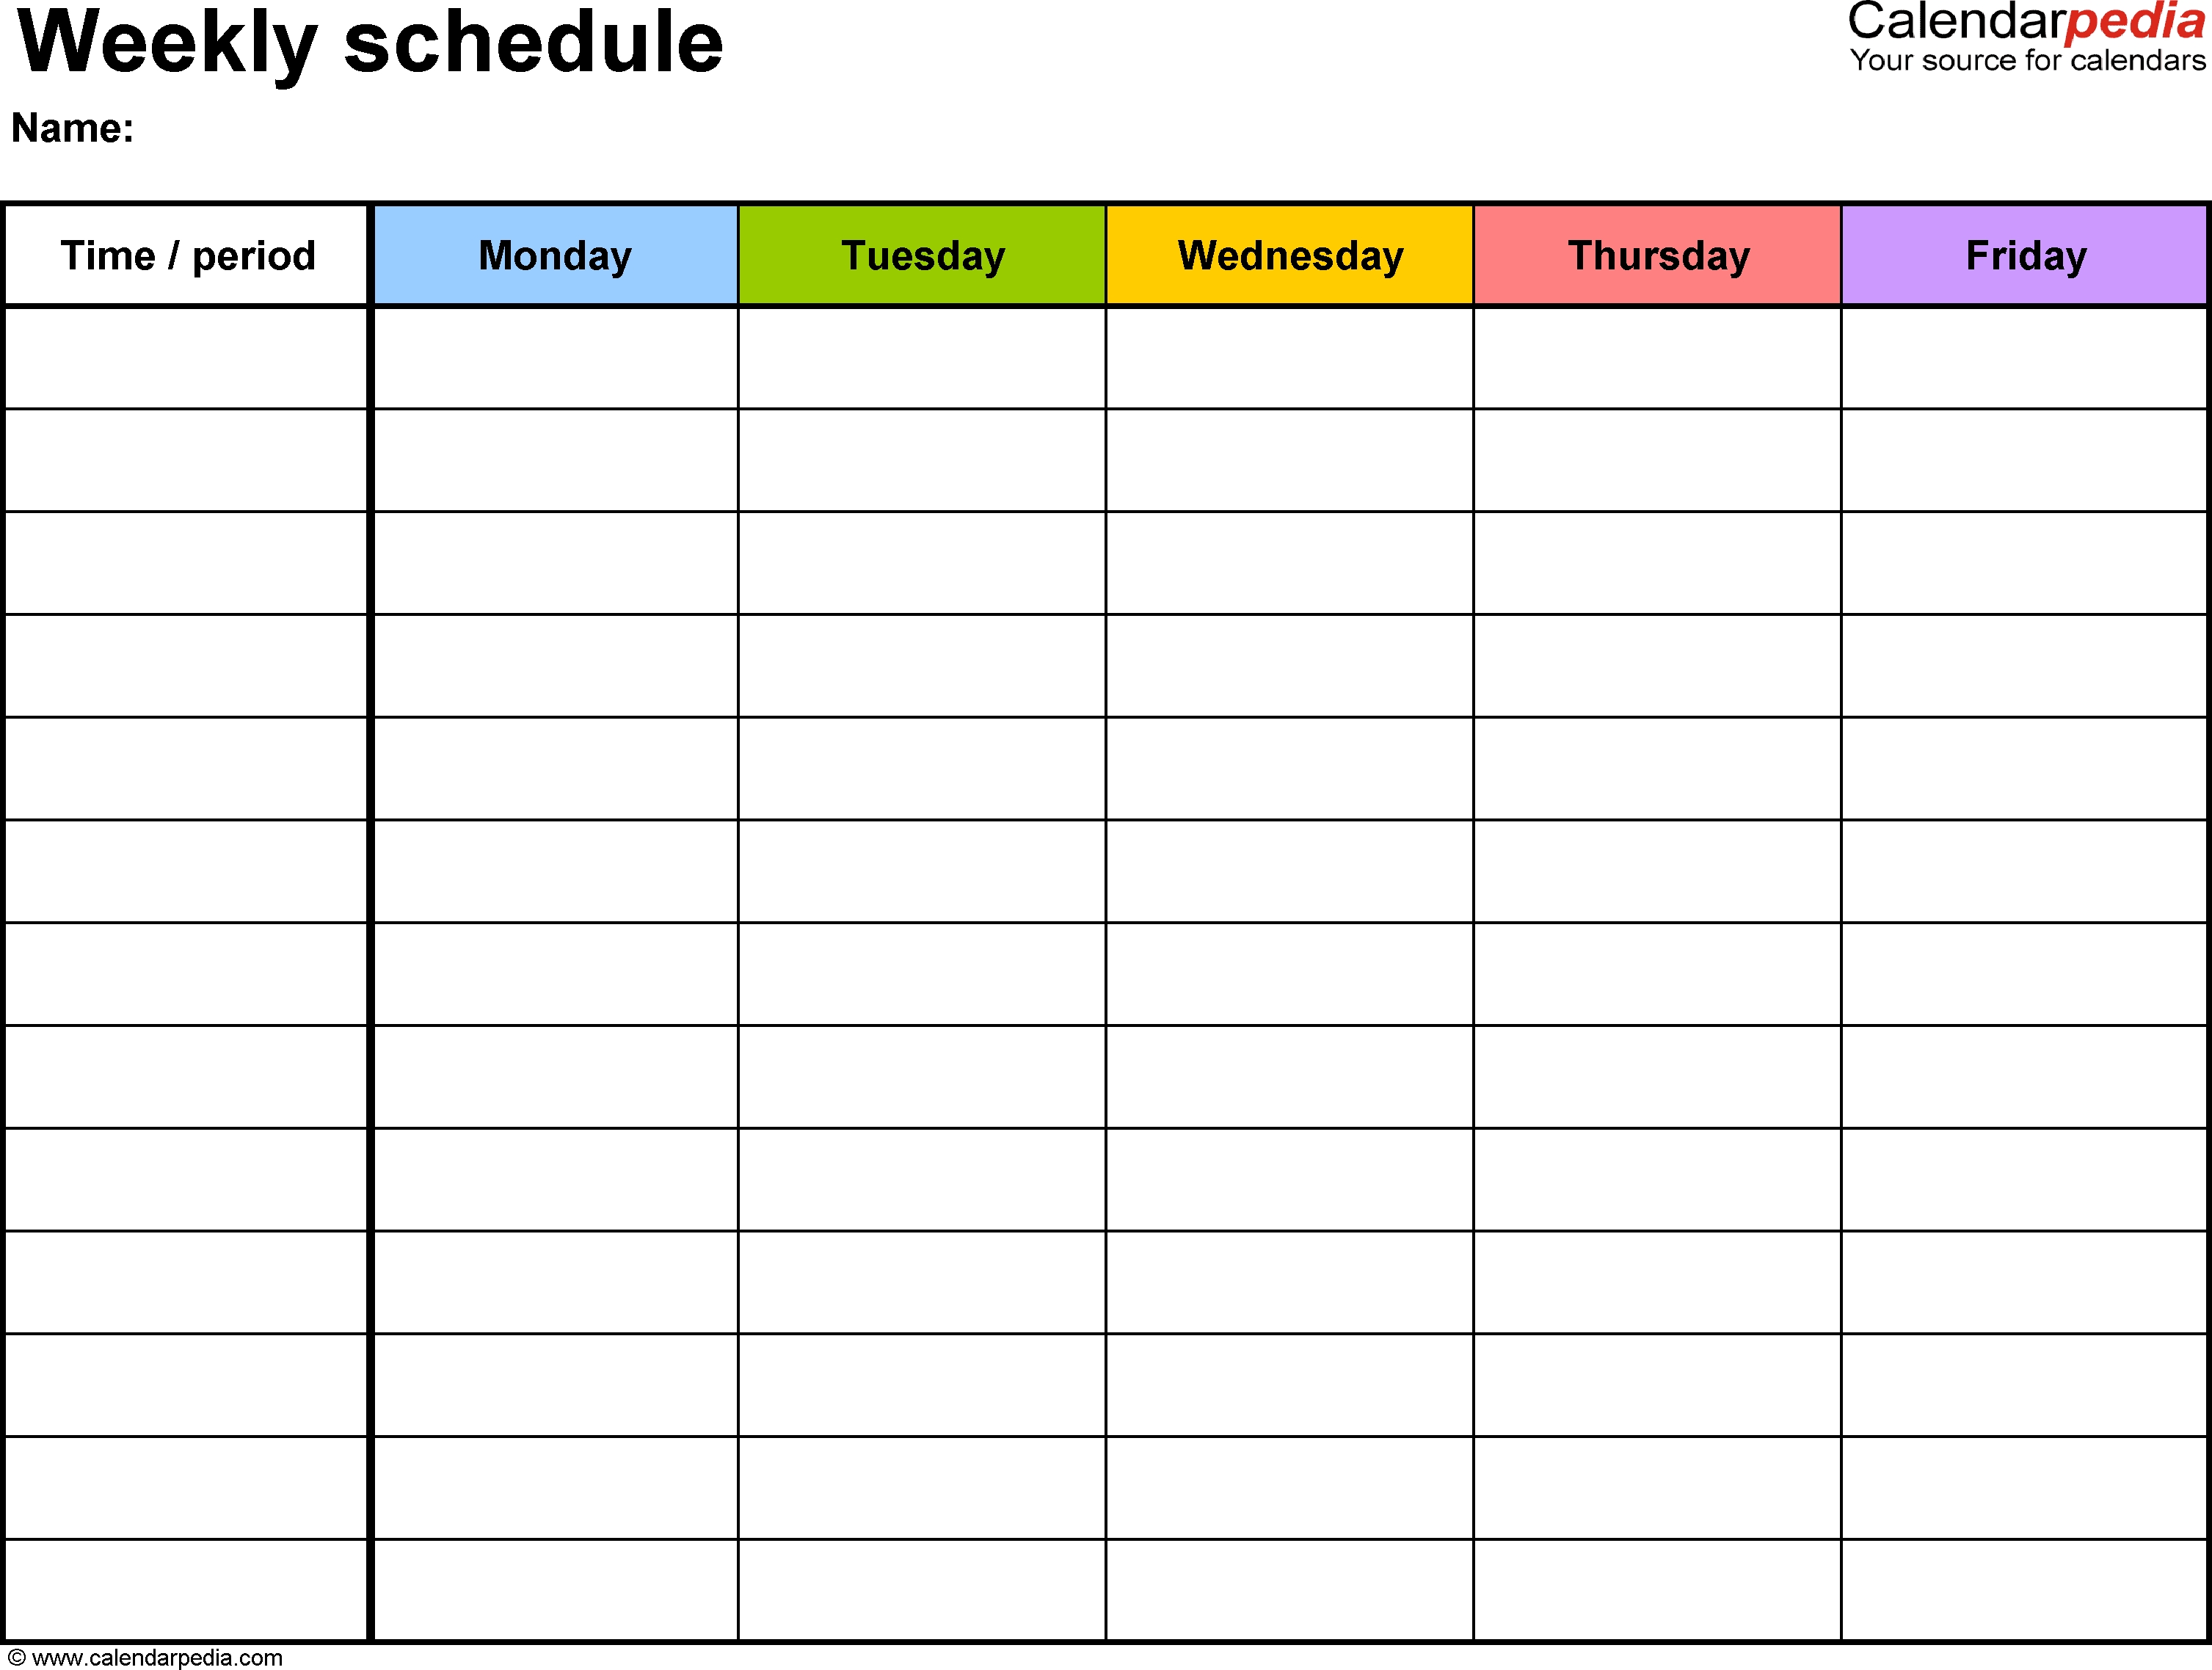 Free Weekly Schedule Templates For Word - 18 Templates-5 Day Calendar Template